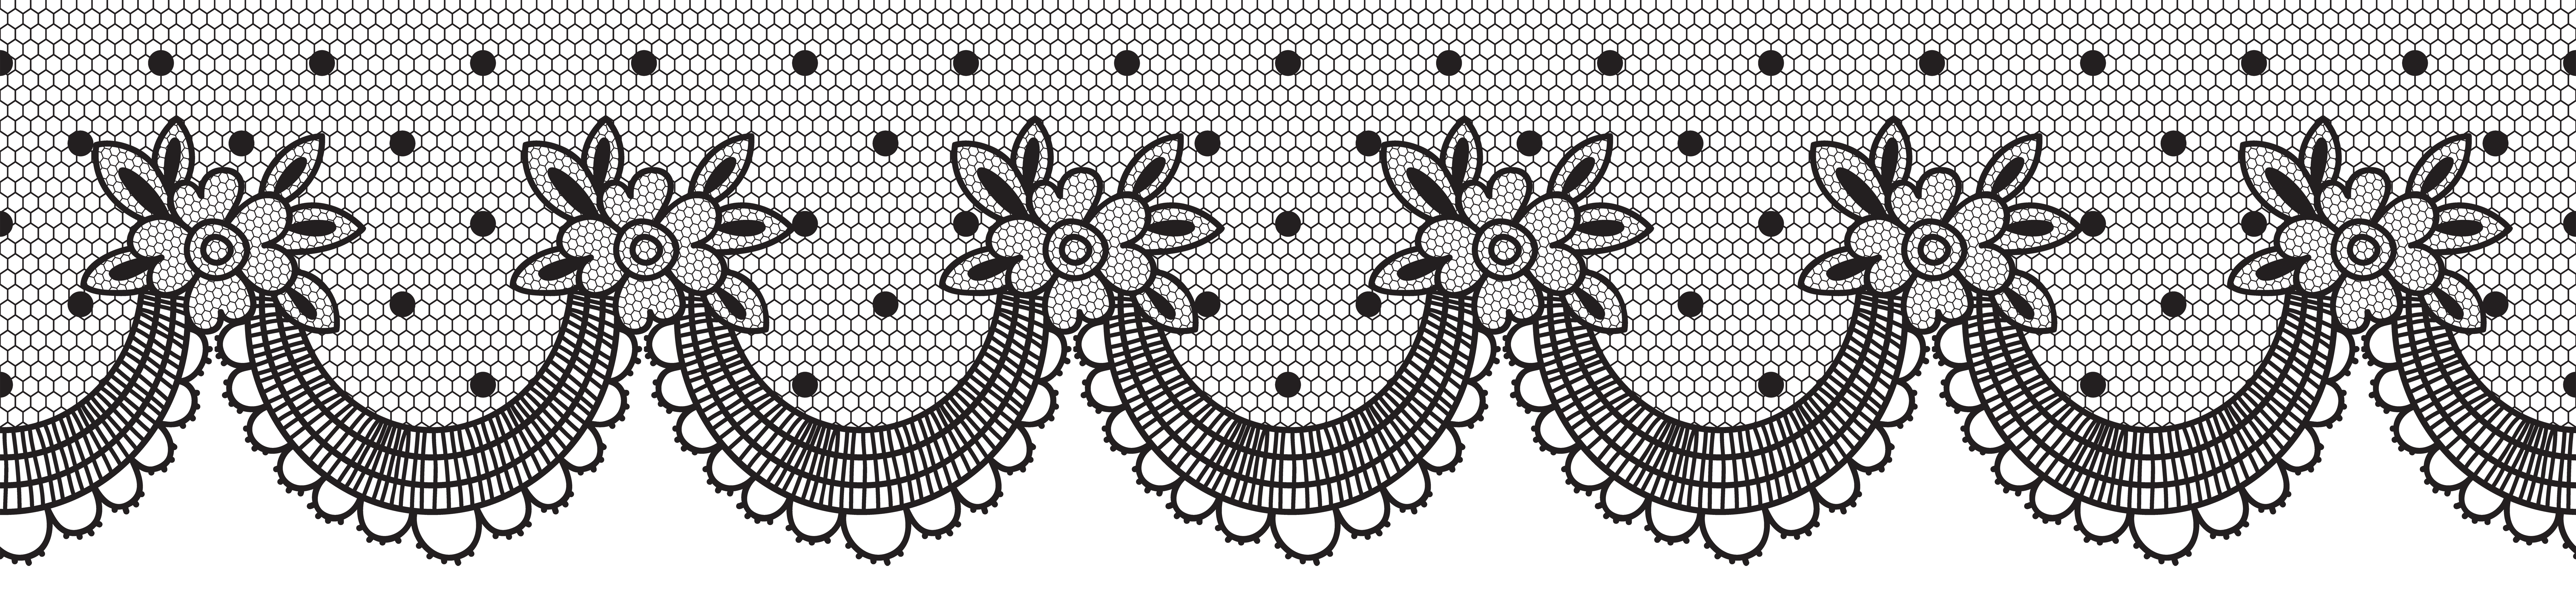 Lace clip art free clipart images gallery for free download.